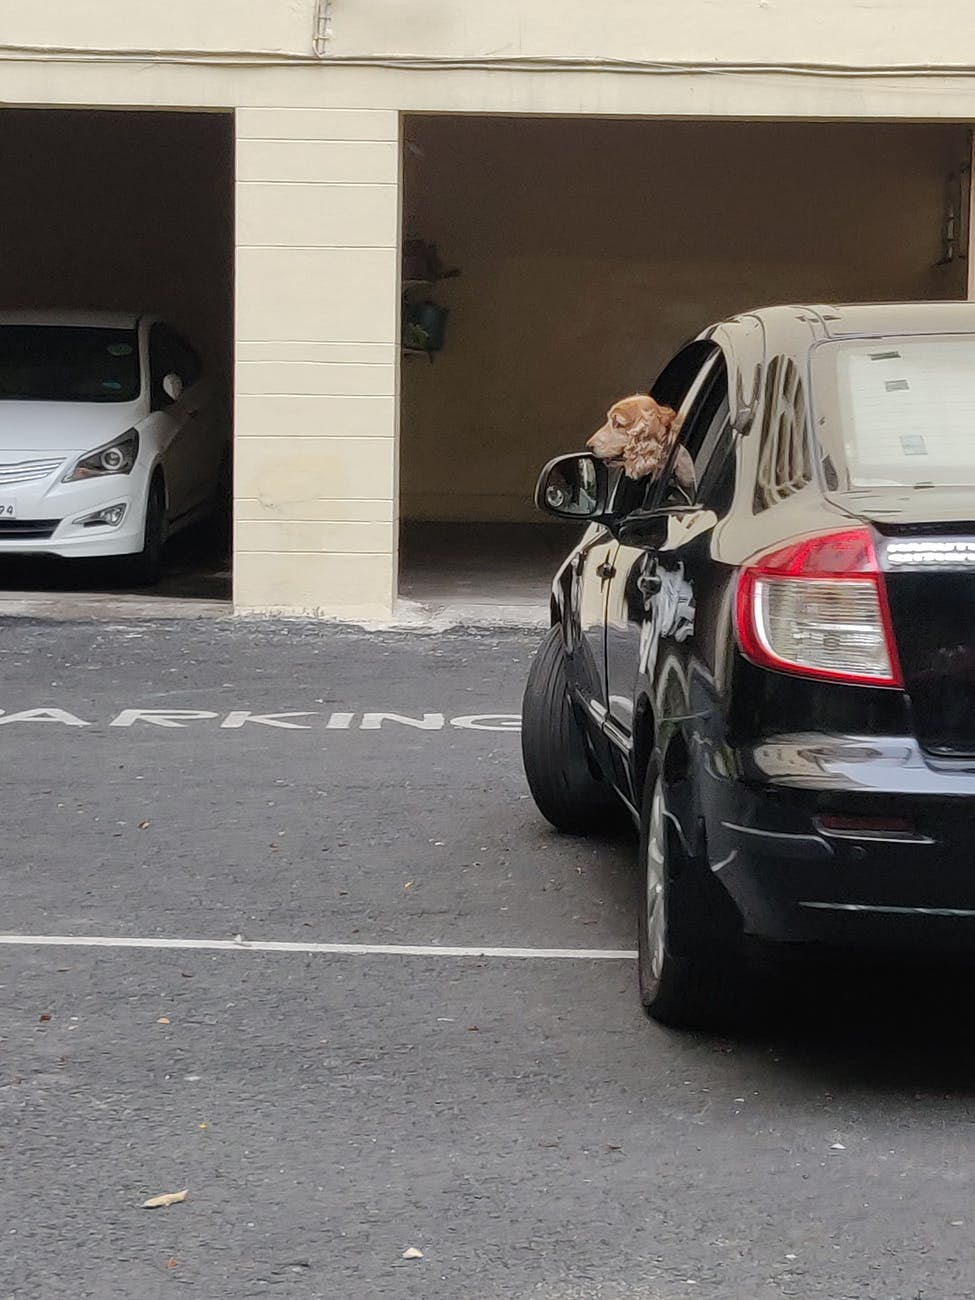 An Open Garage and 2 cars and a dog inside the black car